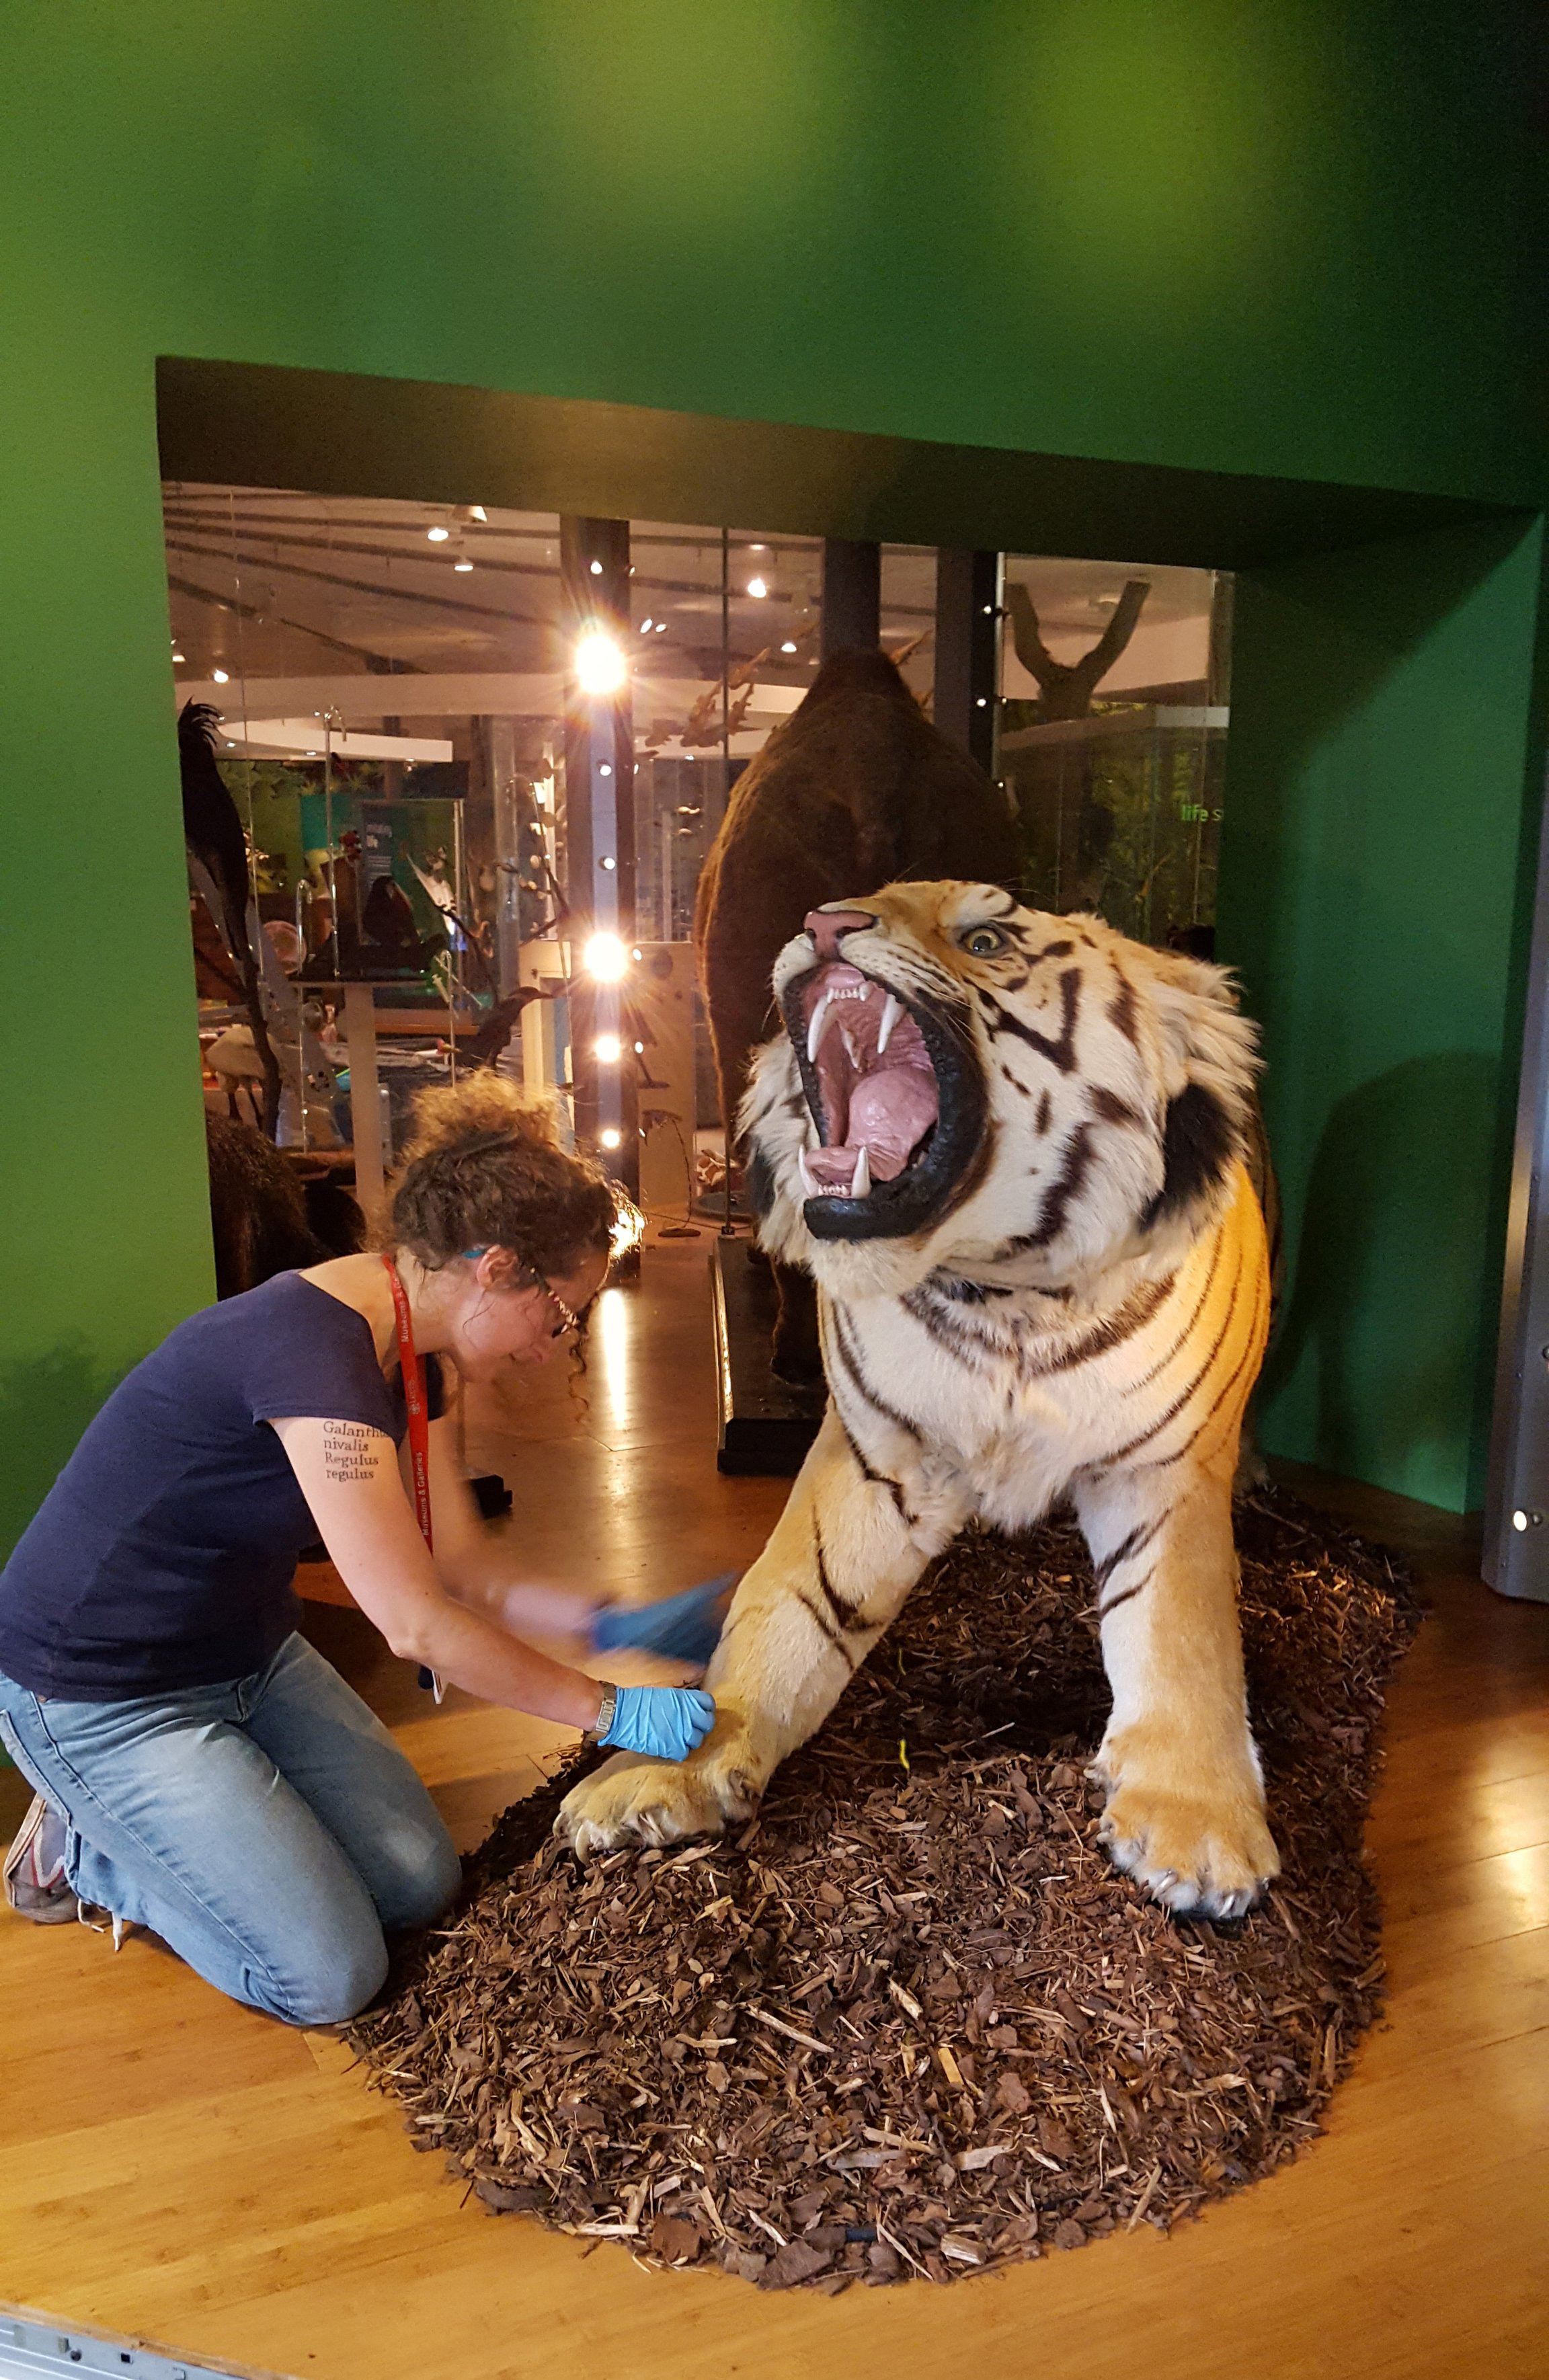 A curator is cleaning the leg of a taxidermy tiger specimen